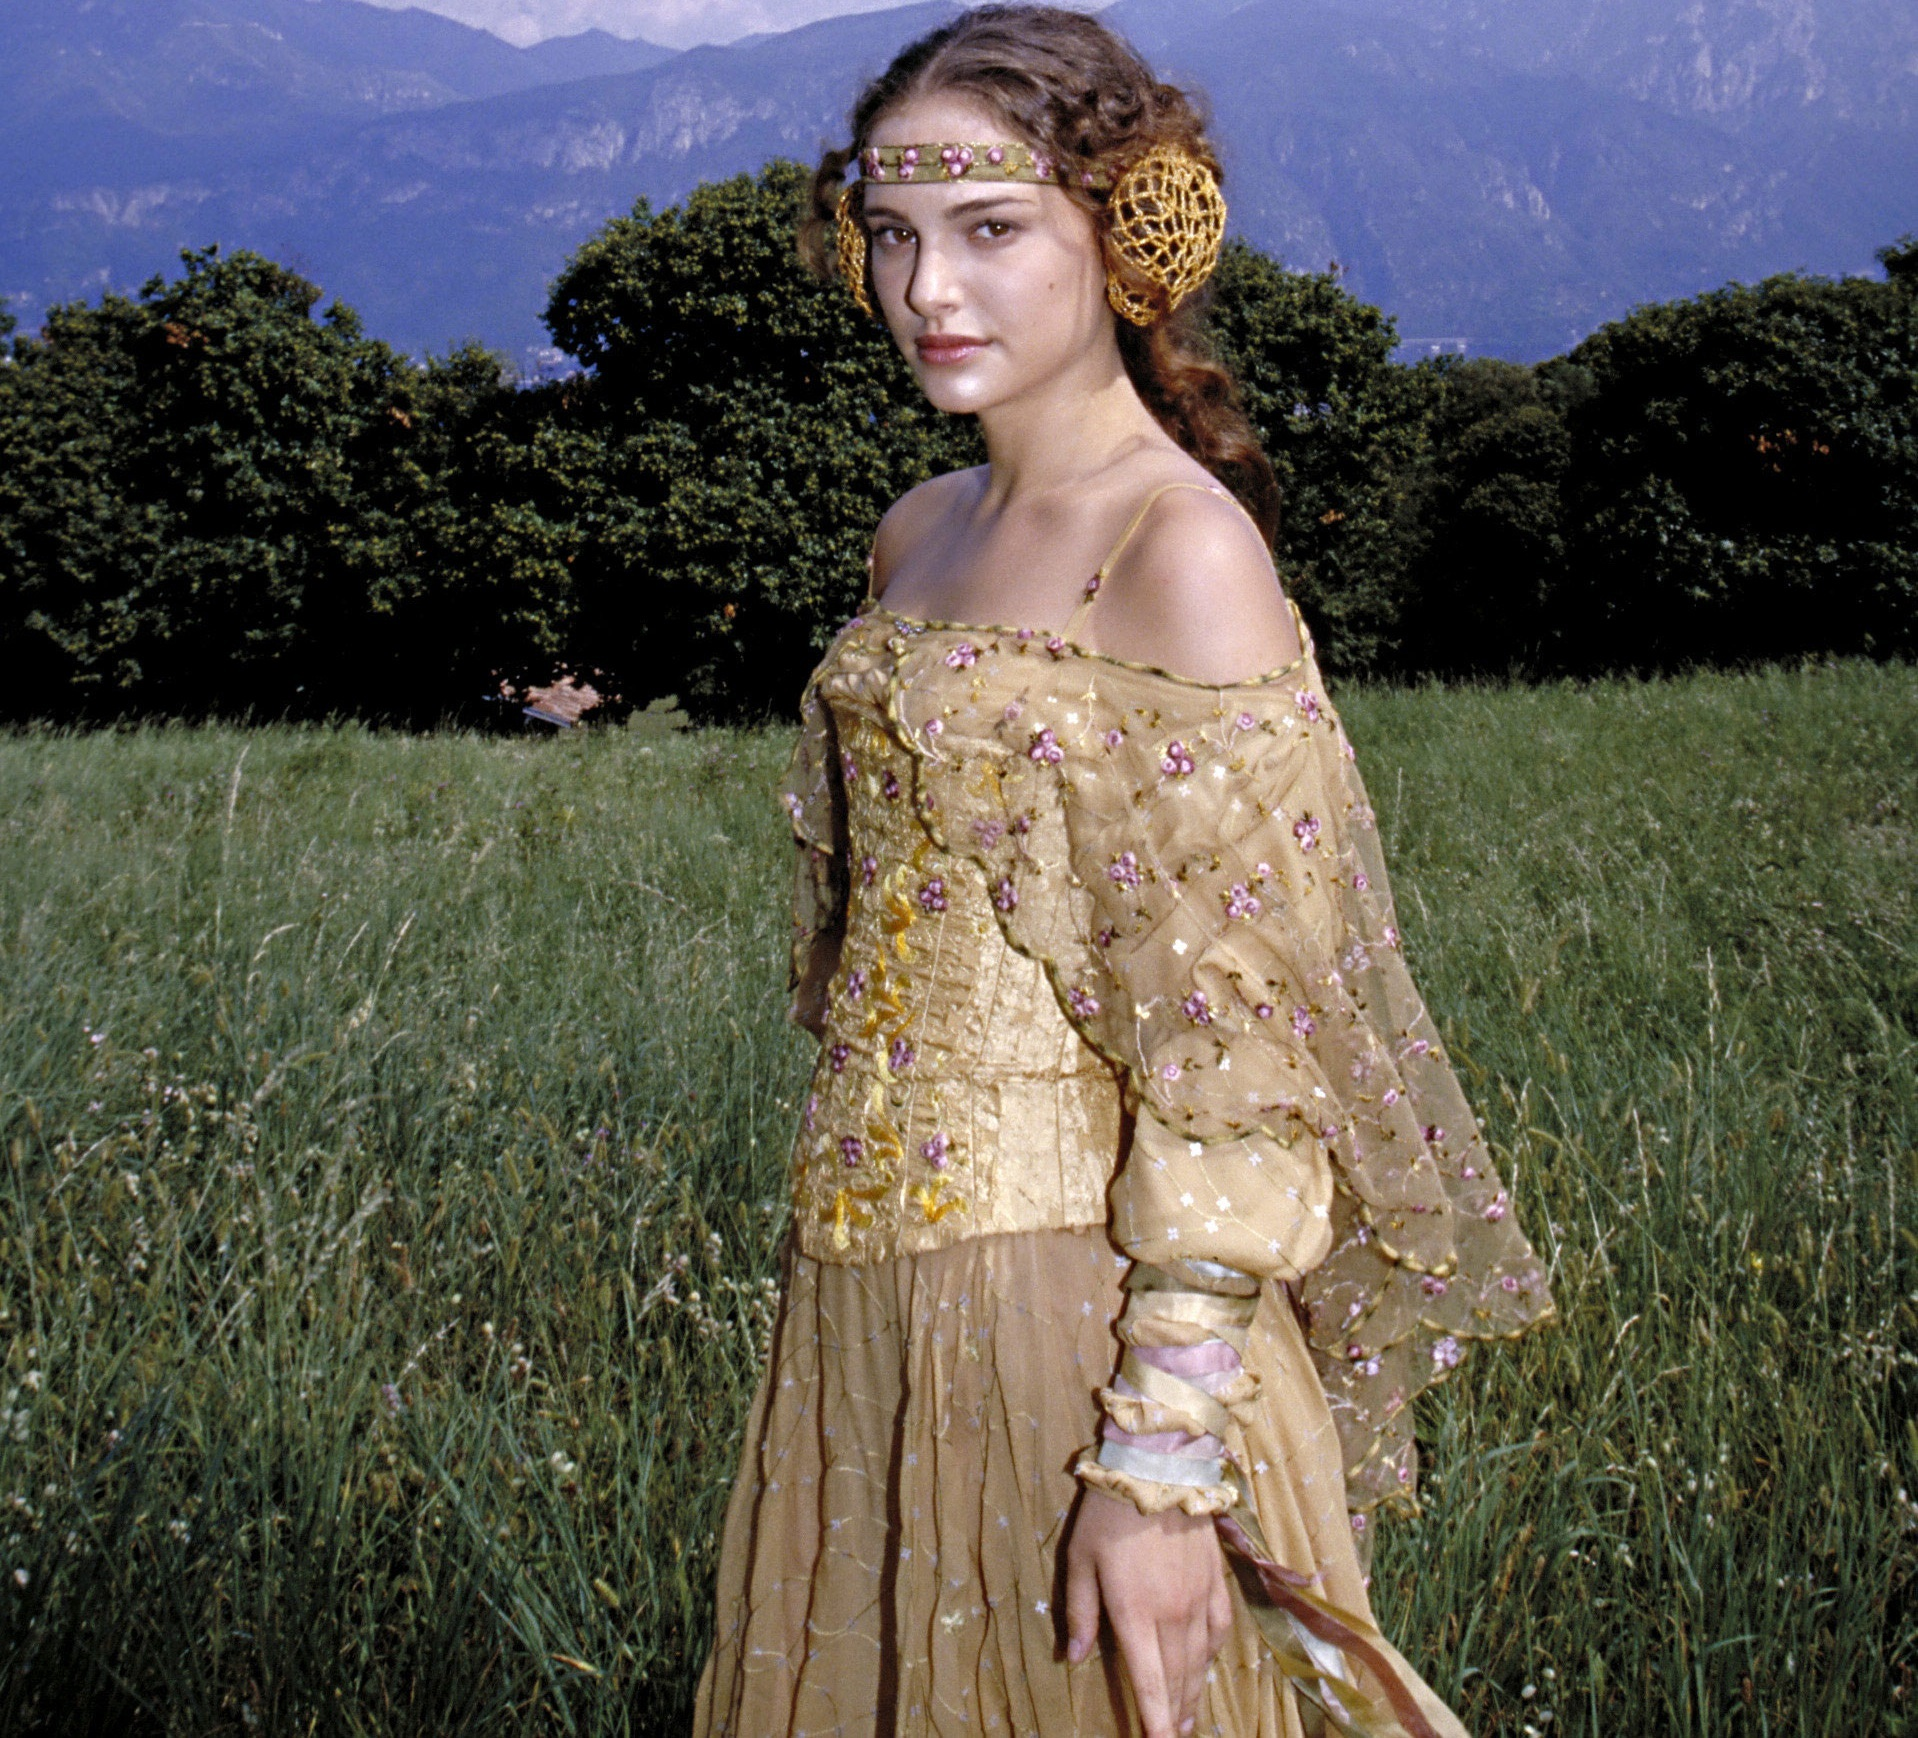 Princesse padme amidala nue porn photo